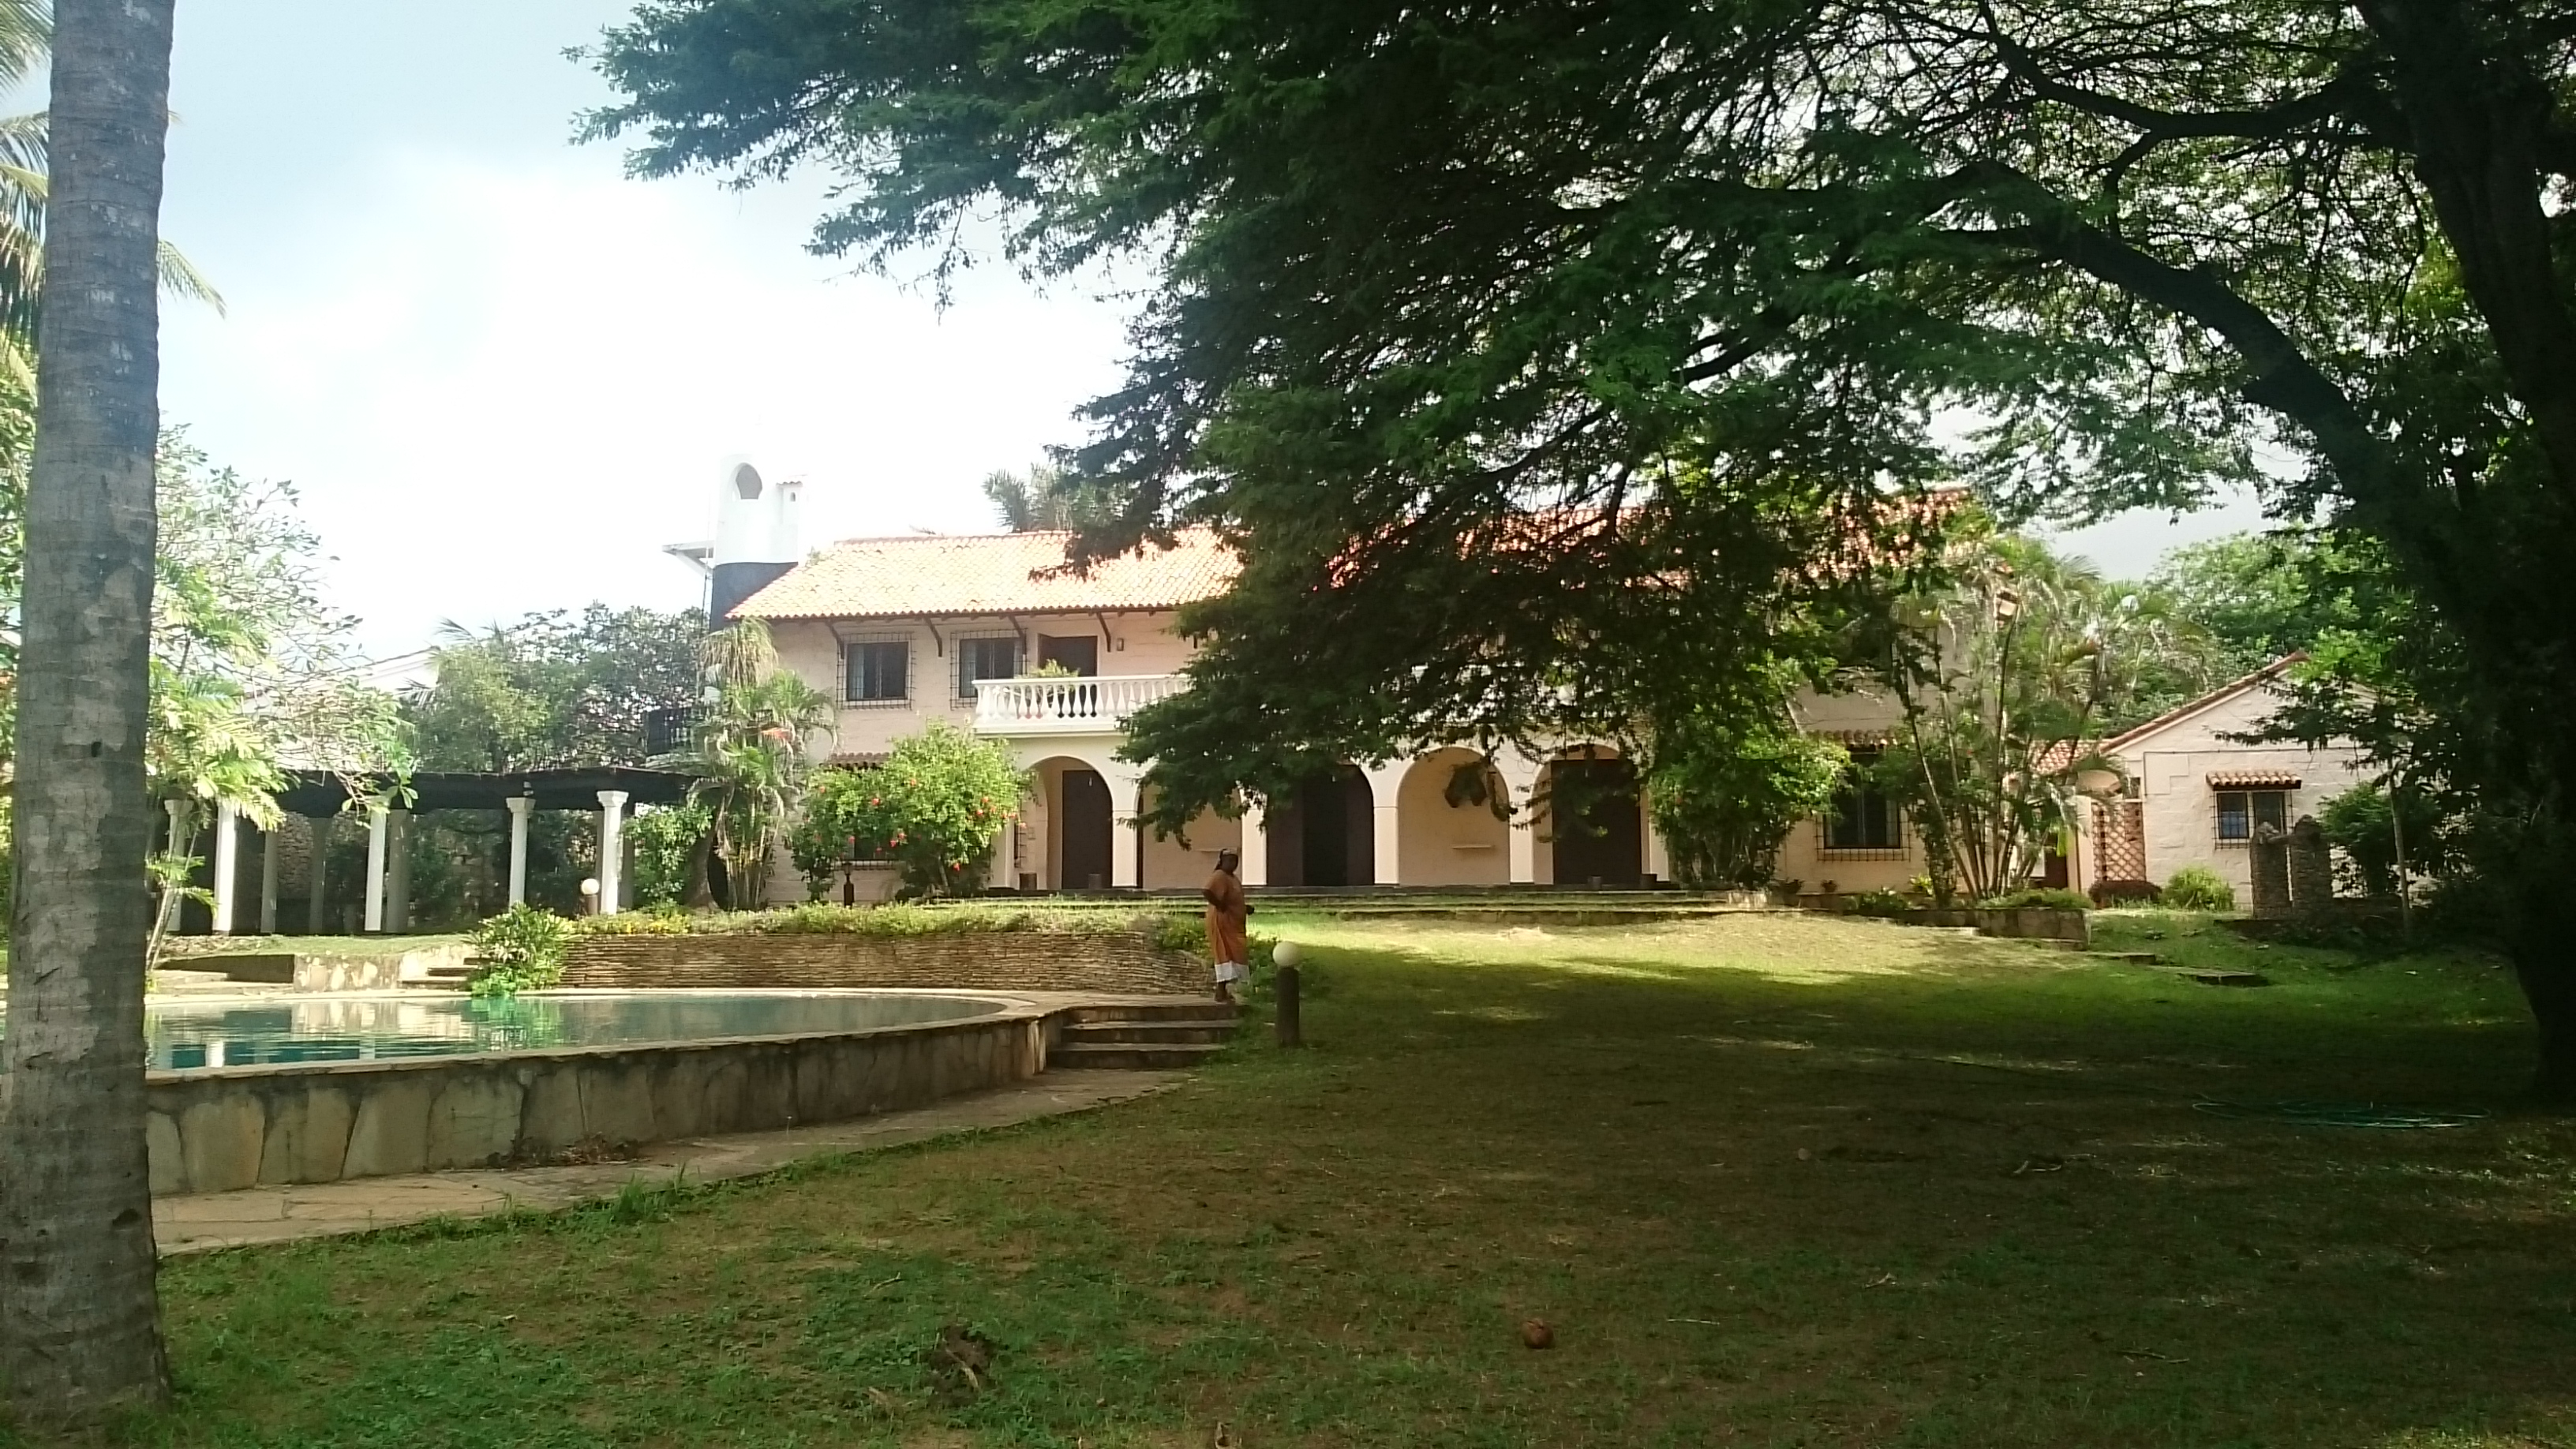 House for sale in mombasa kenya